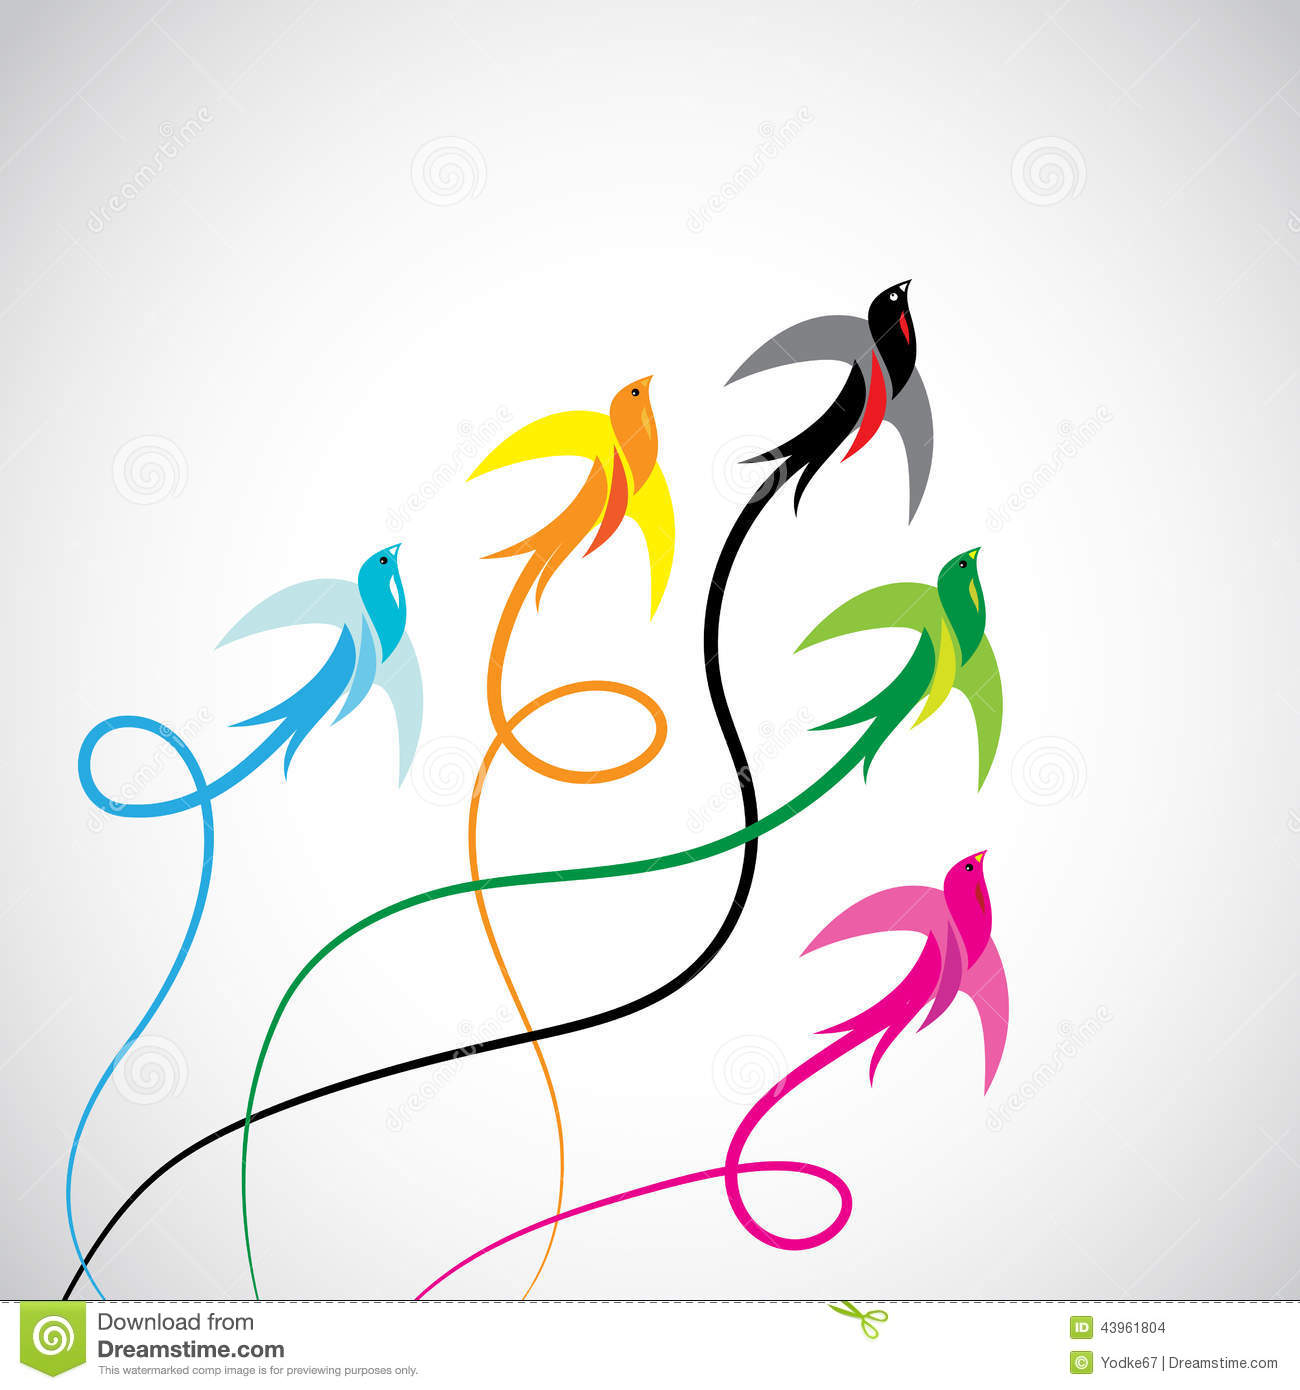 Vector Group Of Colorful Swallow Birds Stock Vector - Image: 43961804 Group Of Colorful Birds